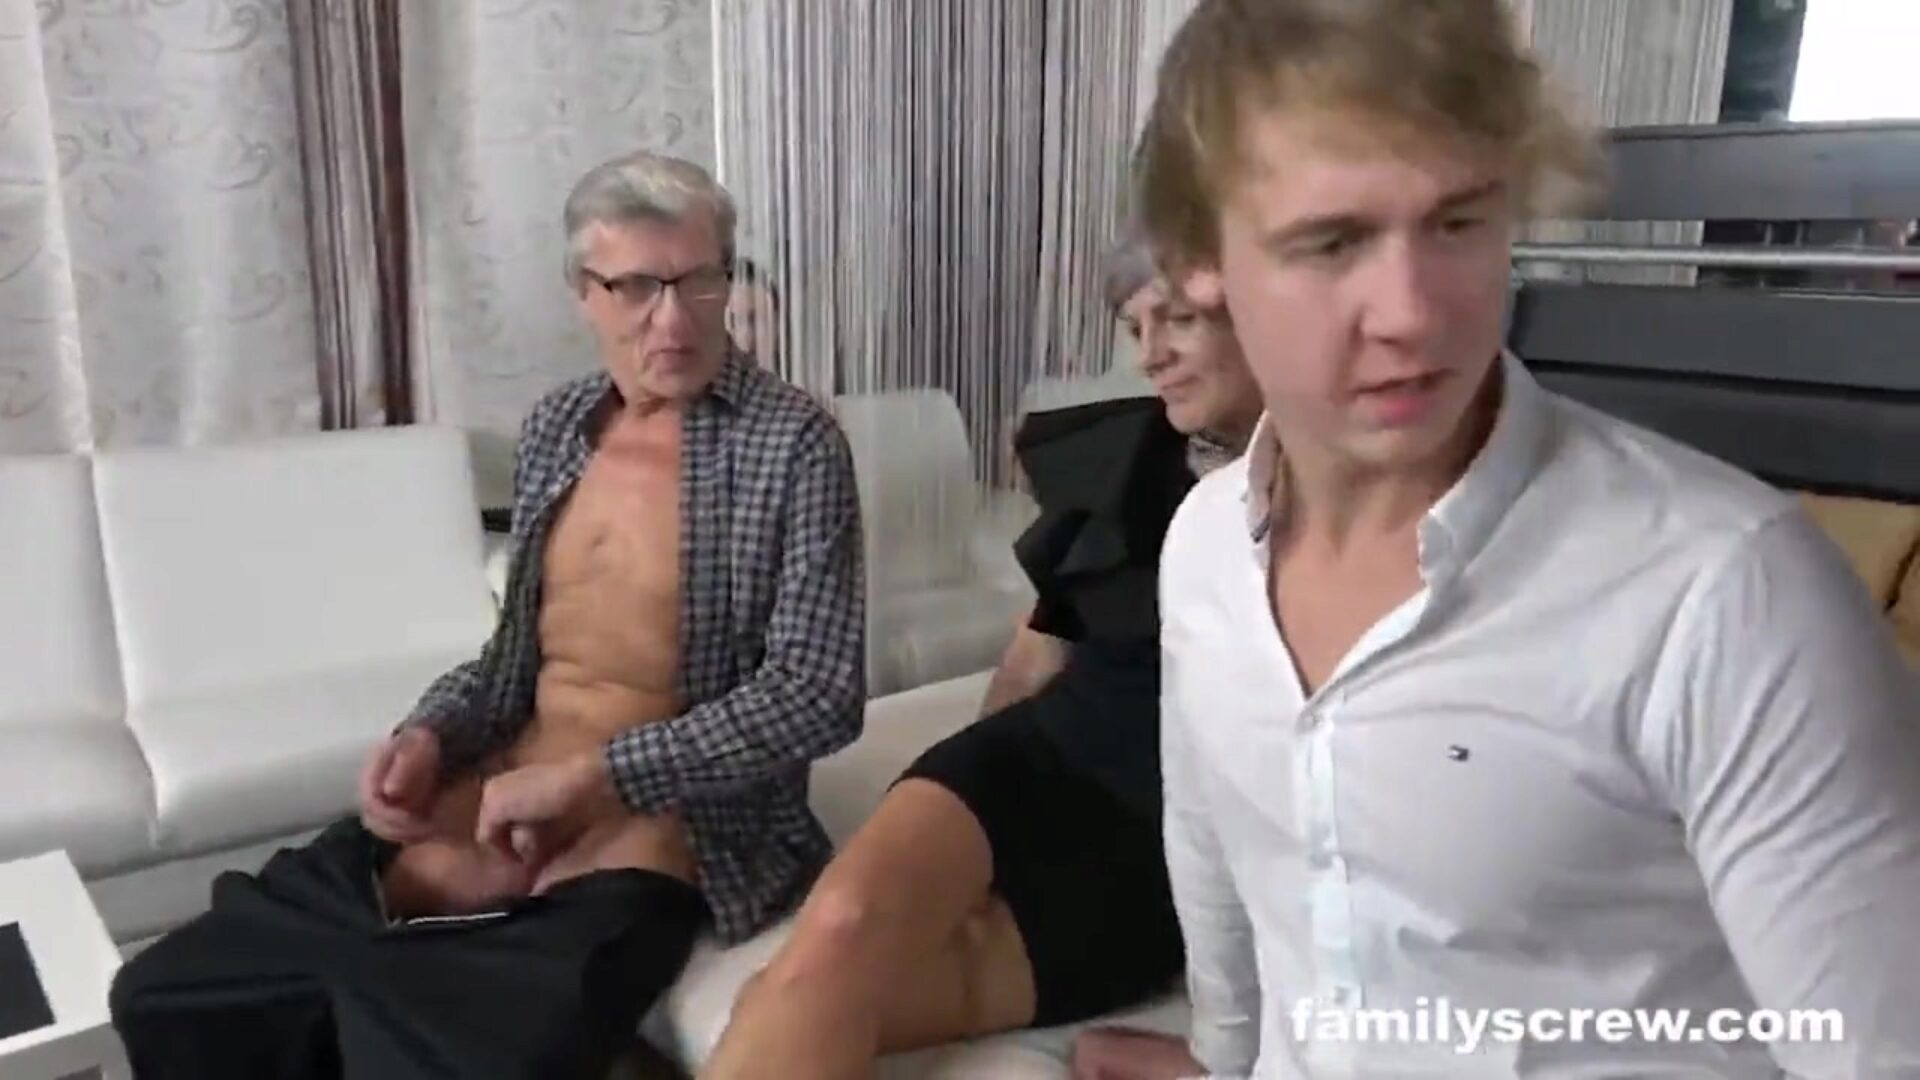 Family visits a Swingers Club for the First Time Can't recall the final time I had this much fun Families are the superlatively good Catch the total 4K ULTRA HD Video at FamilyScrew.com